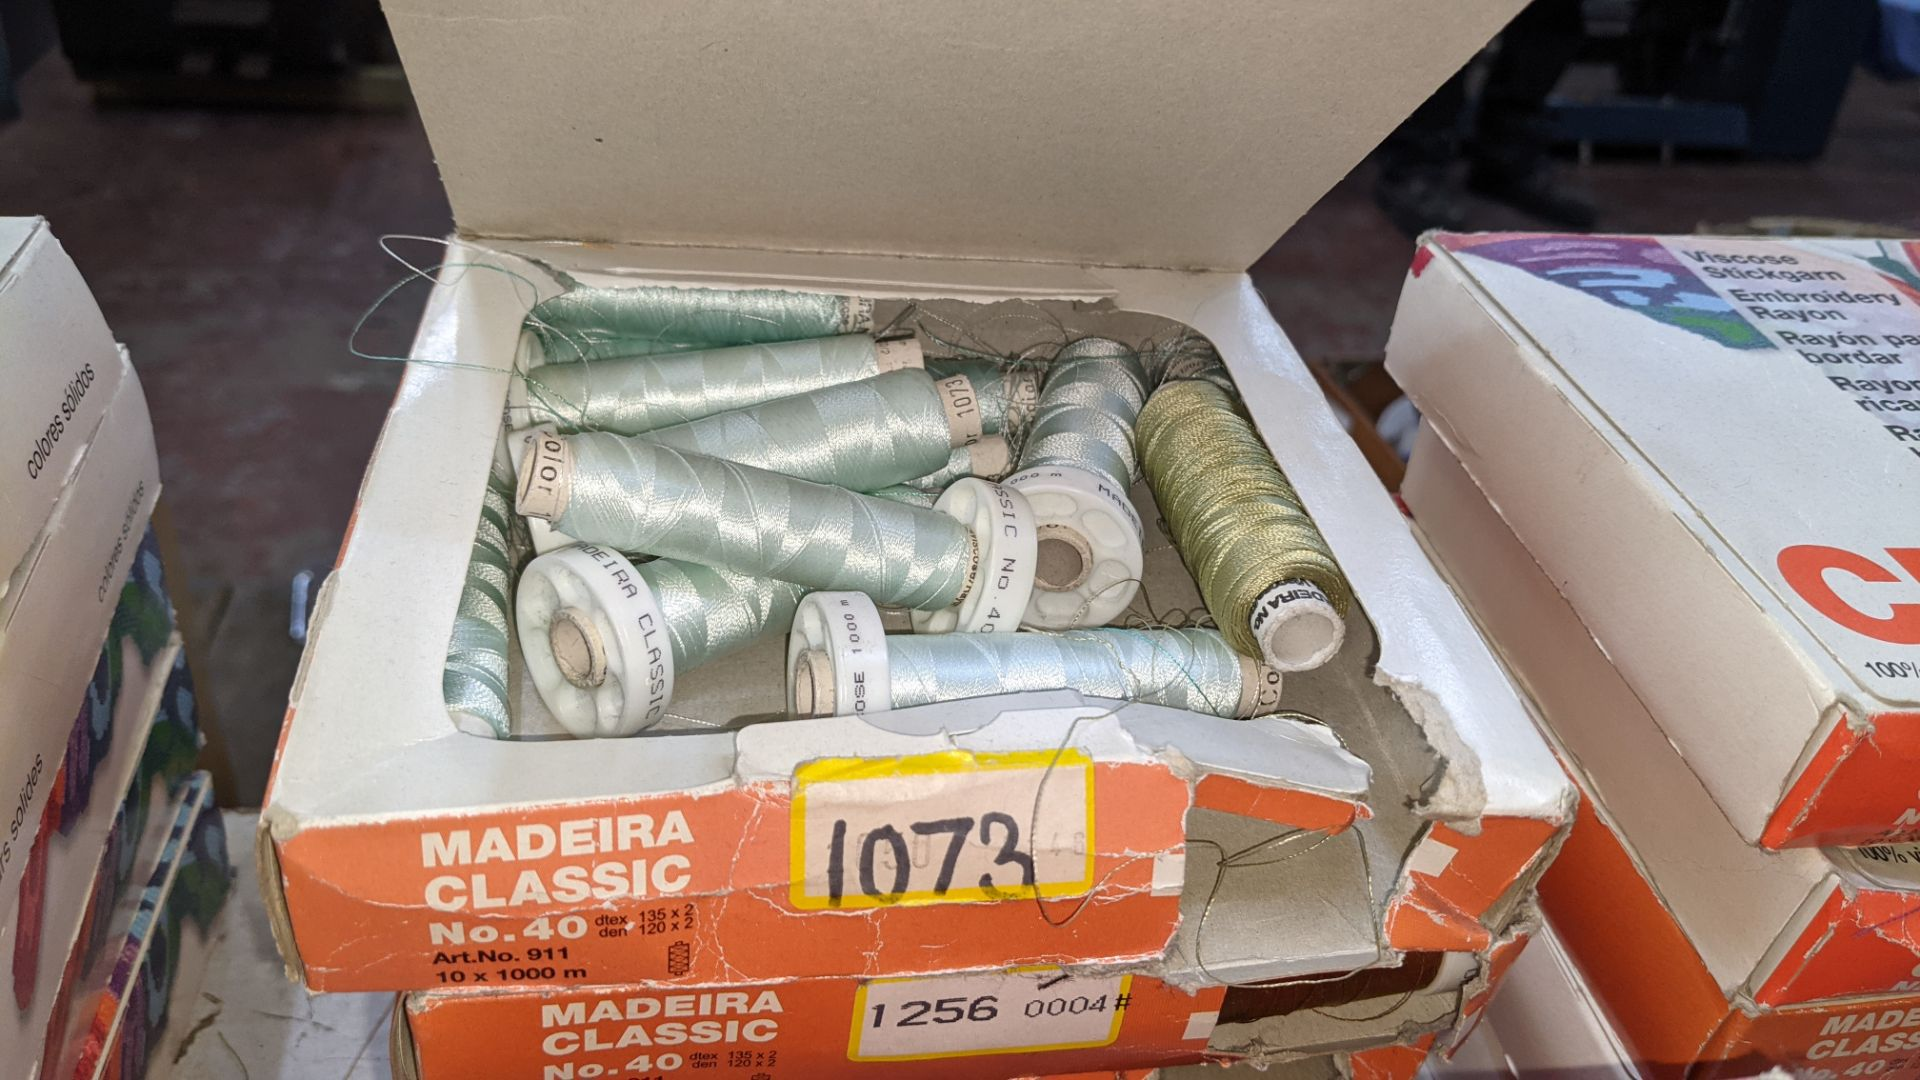 25 boxes of Madeira Classic No. 40 rayon embroidery thread - Image 12 of 12